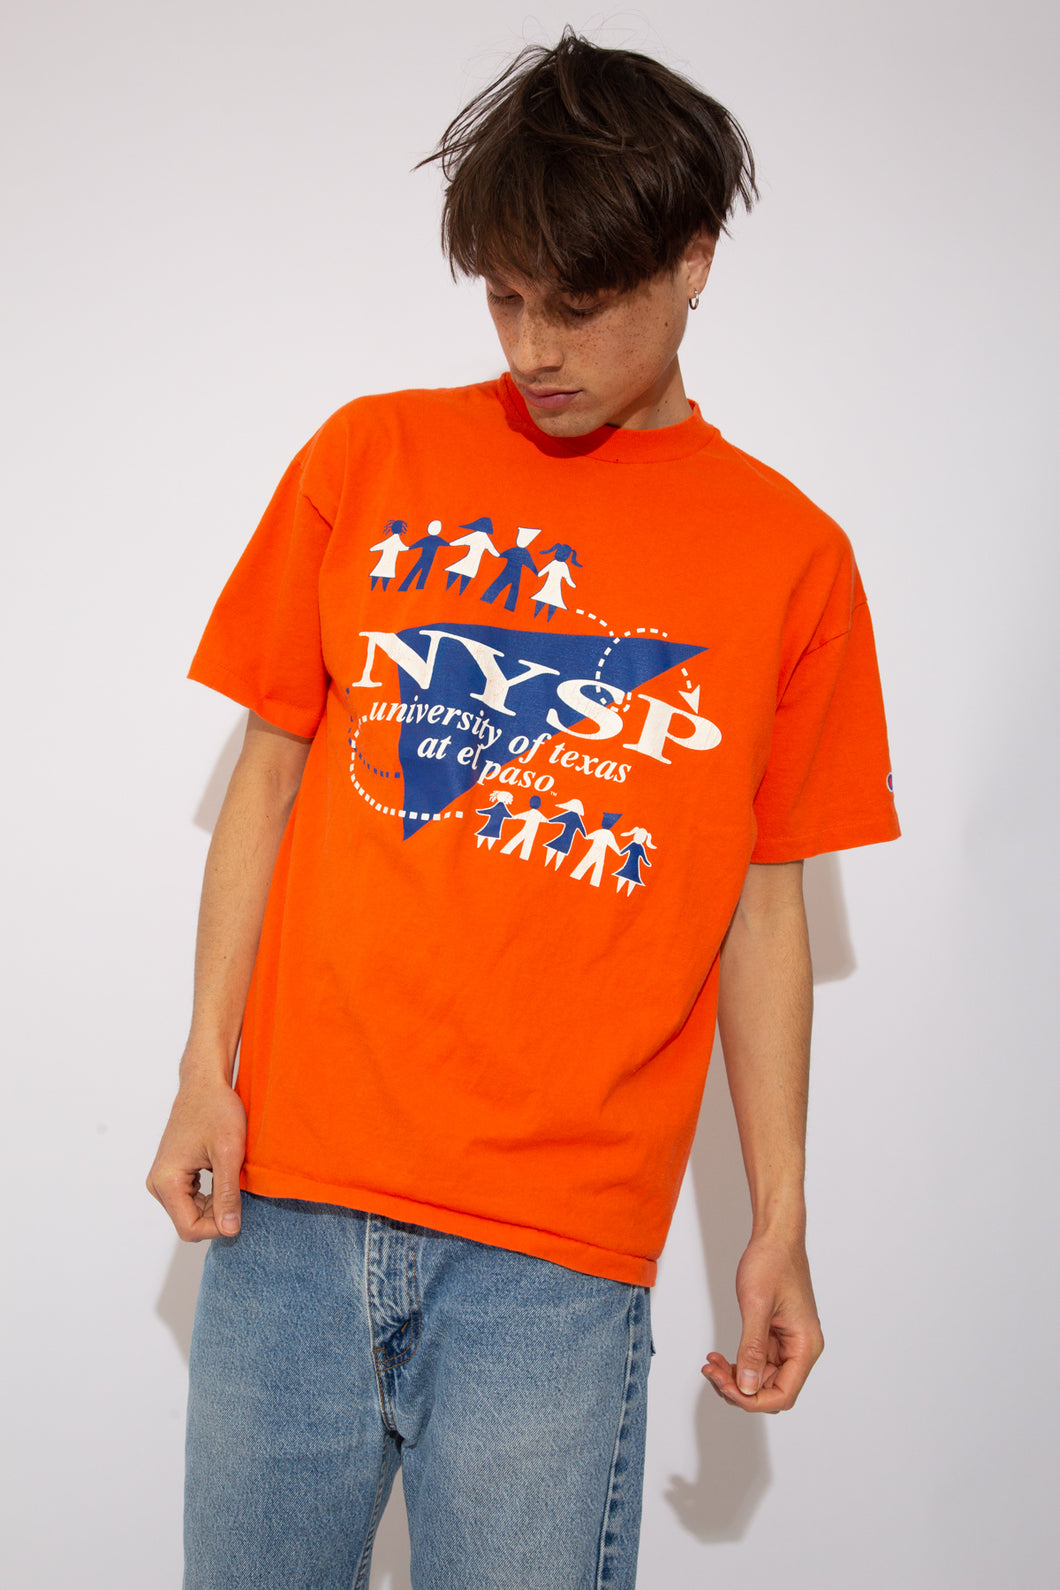 Single-Stitch Orange Champion tee with the text